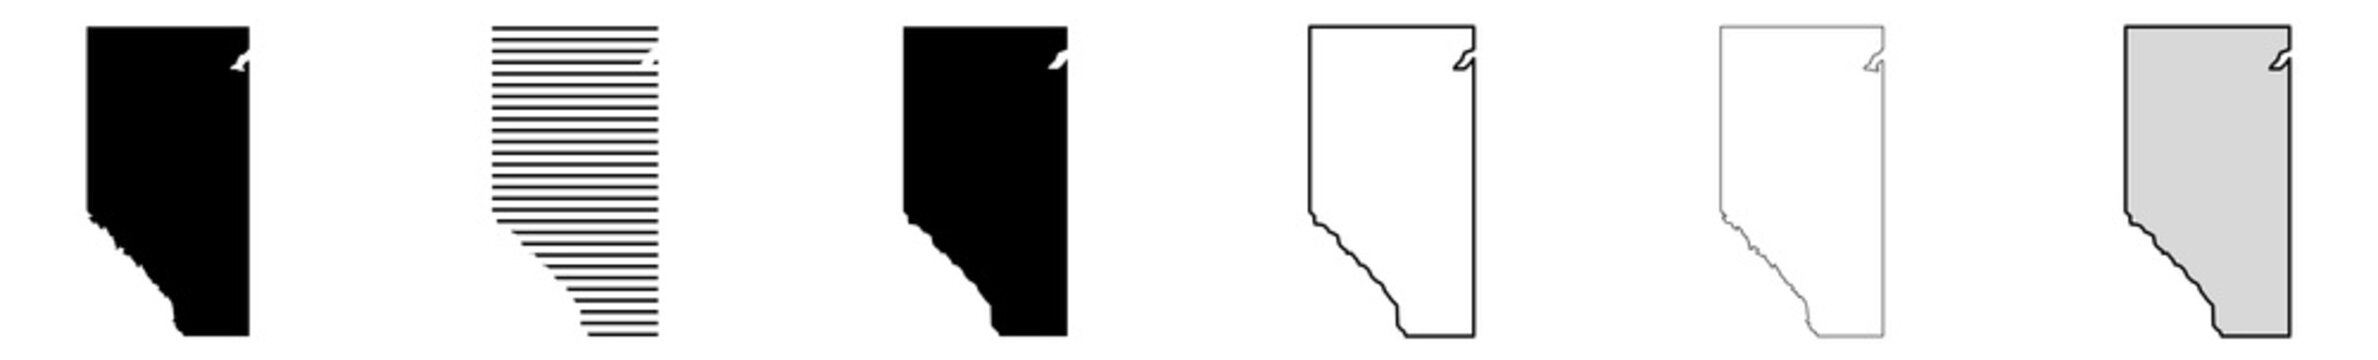 Alberta Map Black | Province Border | Canada State | Canadian | America | Transparent Isolated | Variations